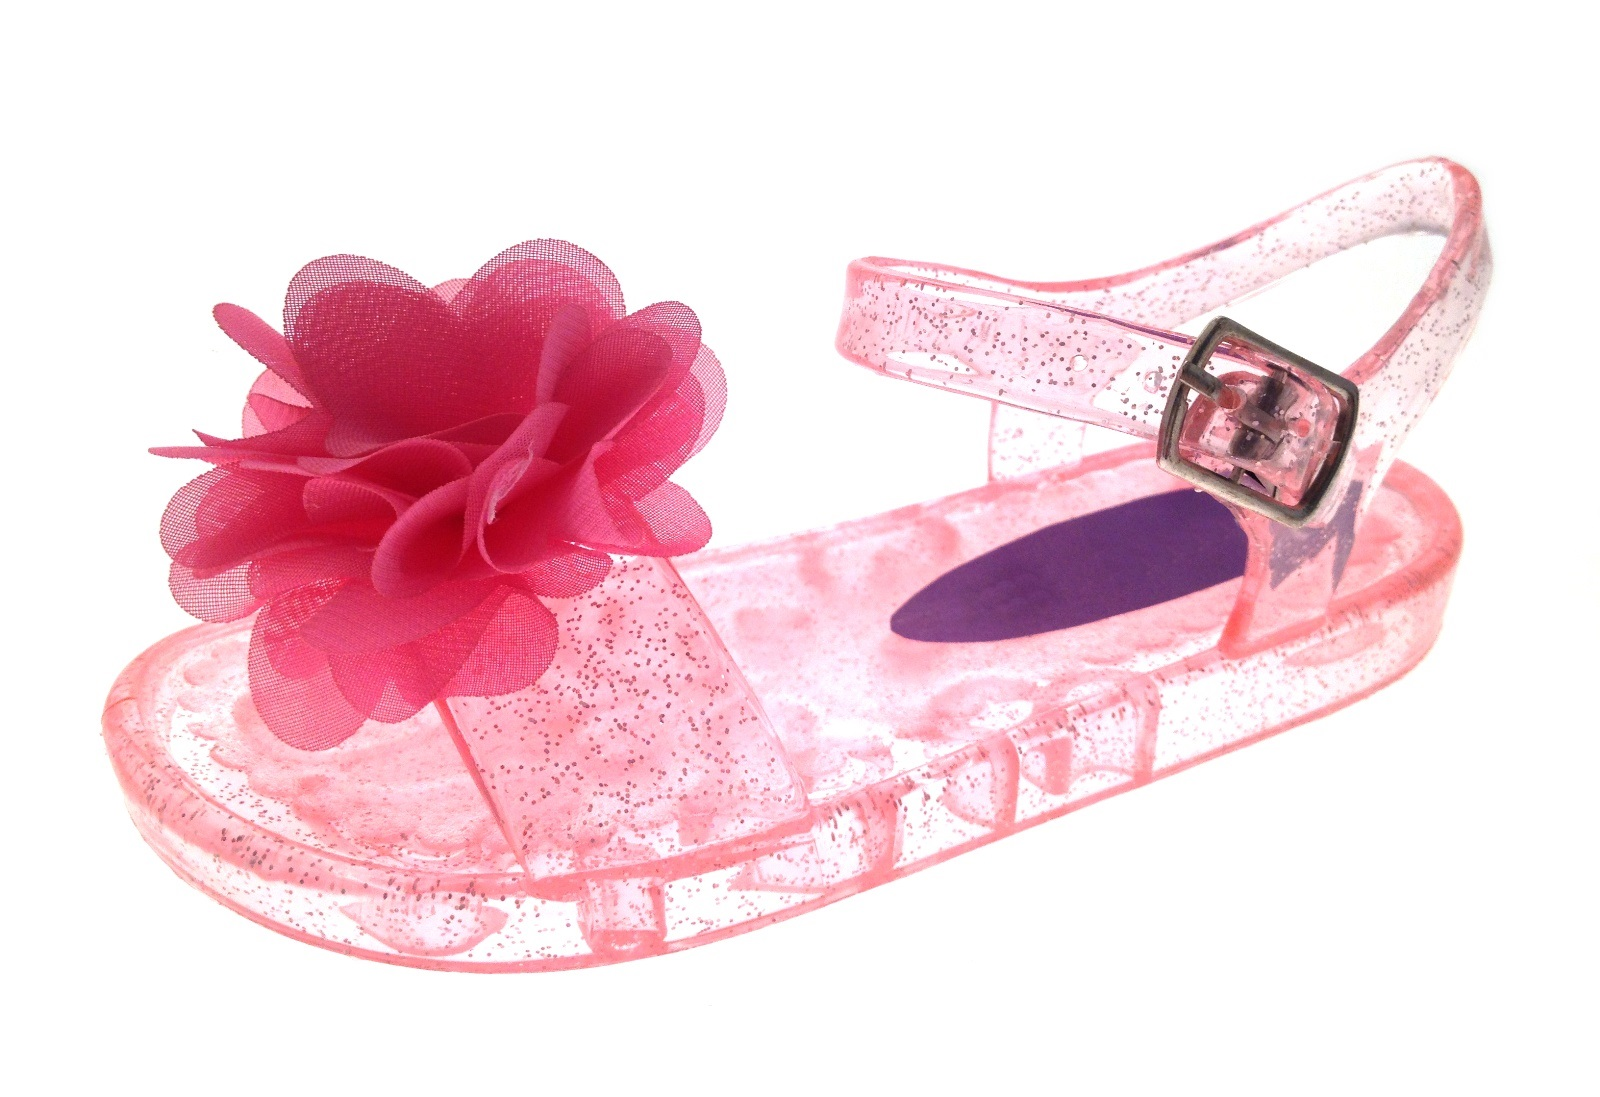 Completely new Girls Jelly Sandals Shoes Kids Flat Summer Beach Flower Jellies  JB59